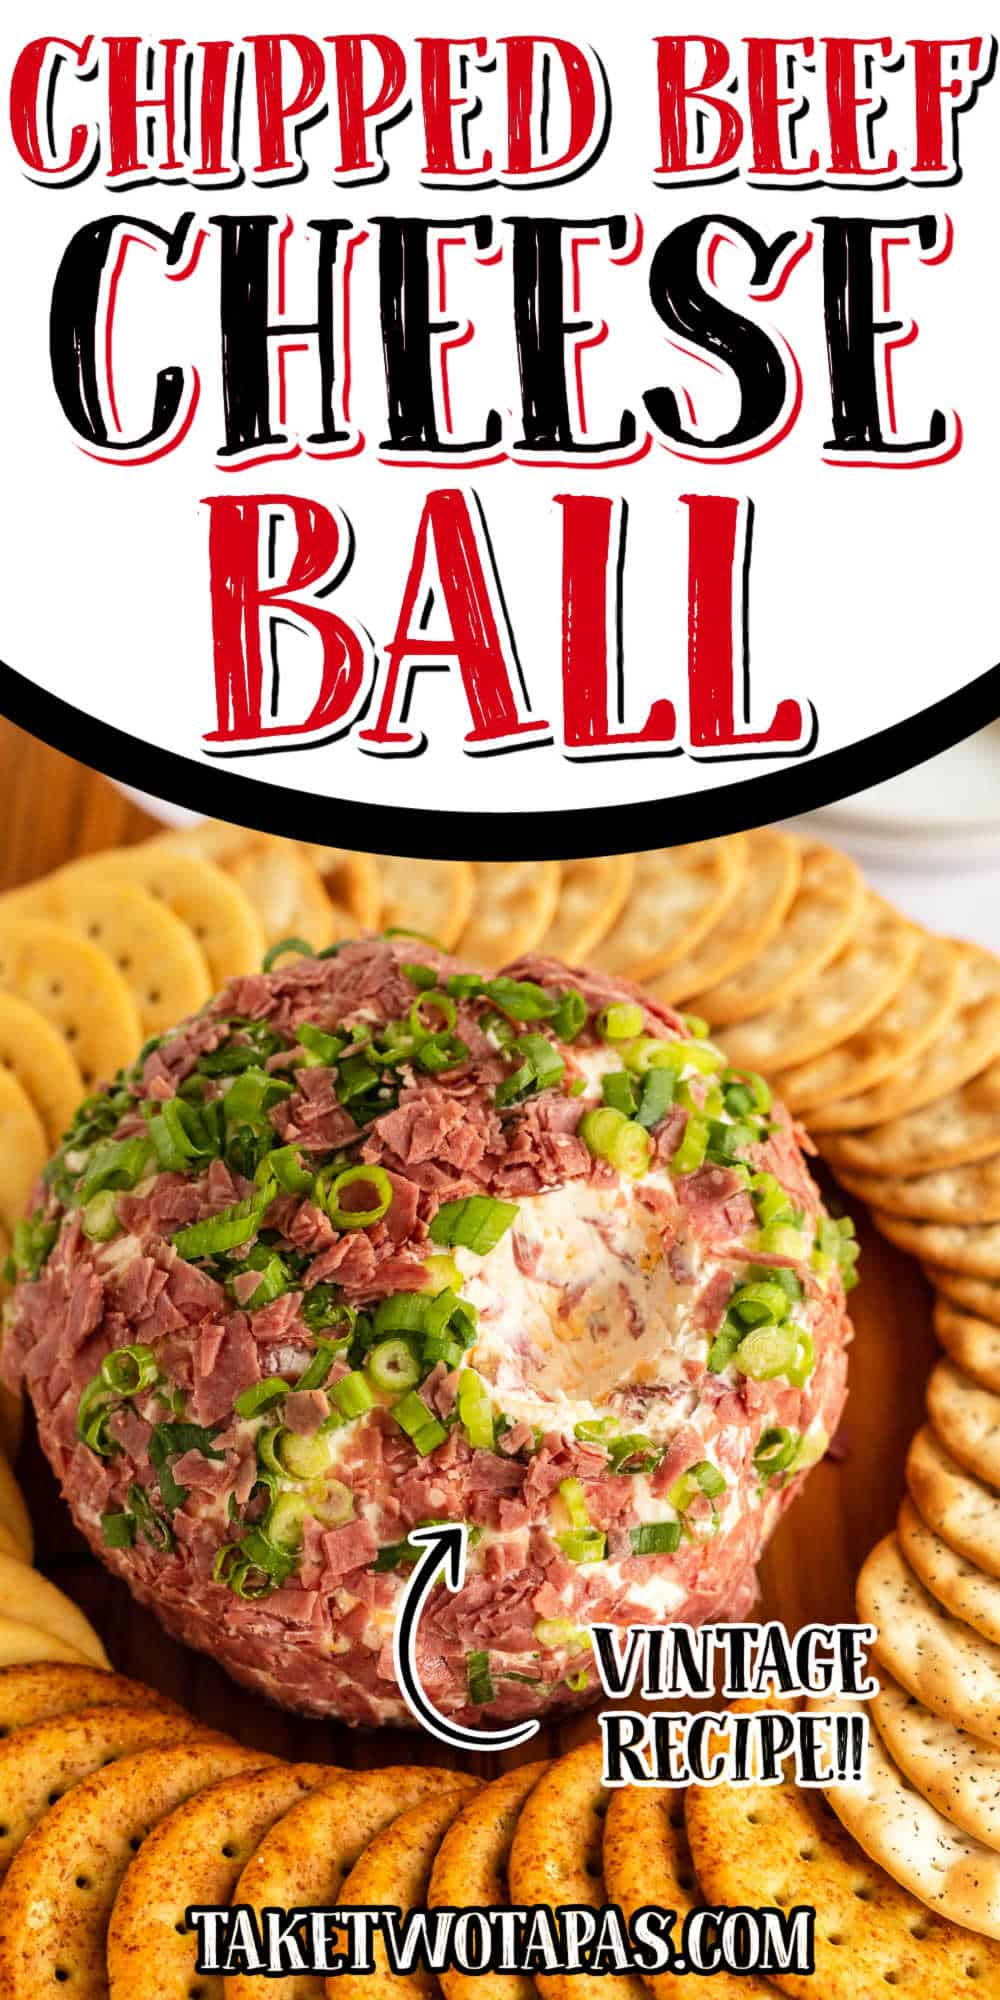 """cheese ball with text """"chipped beef vintage recipe"""""""